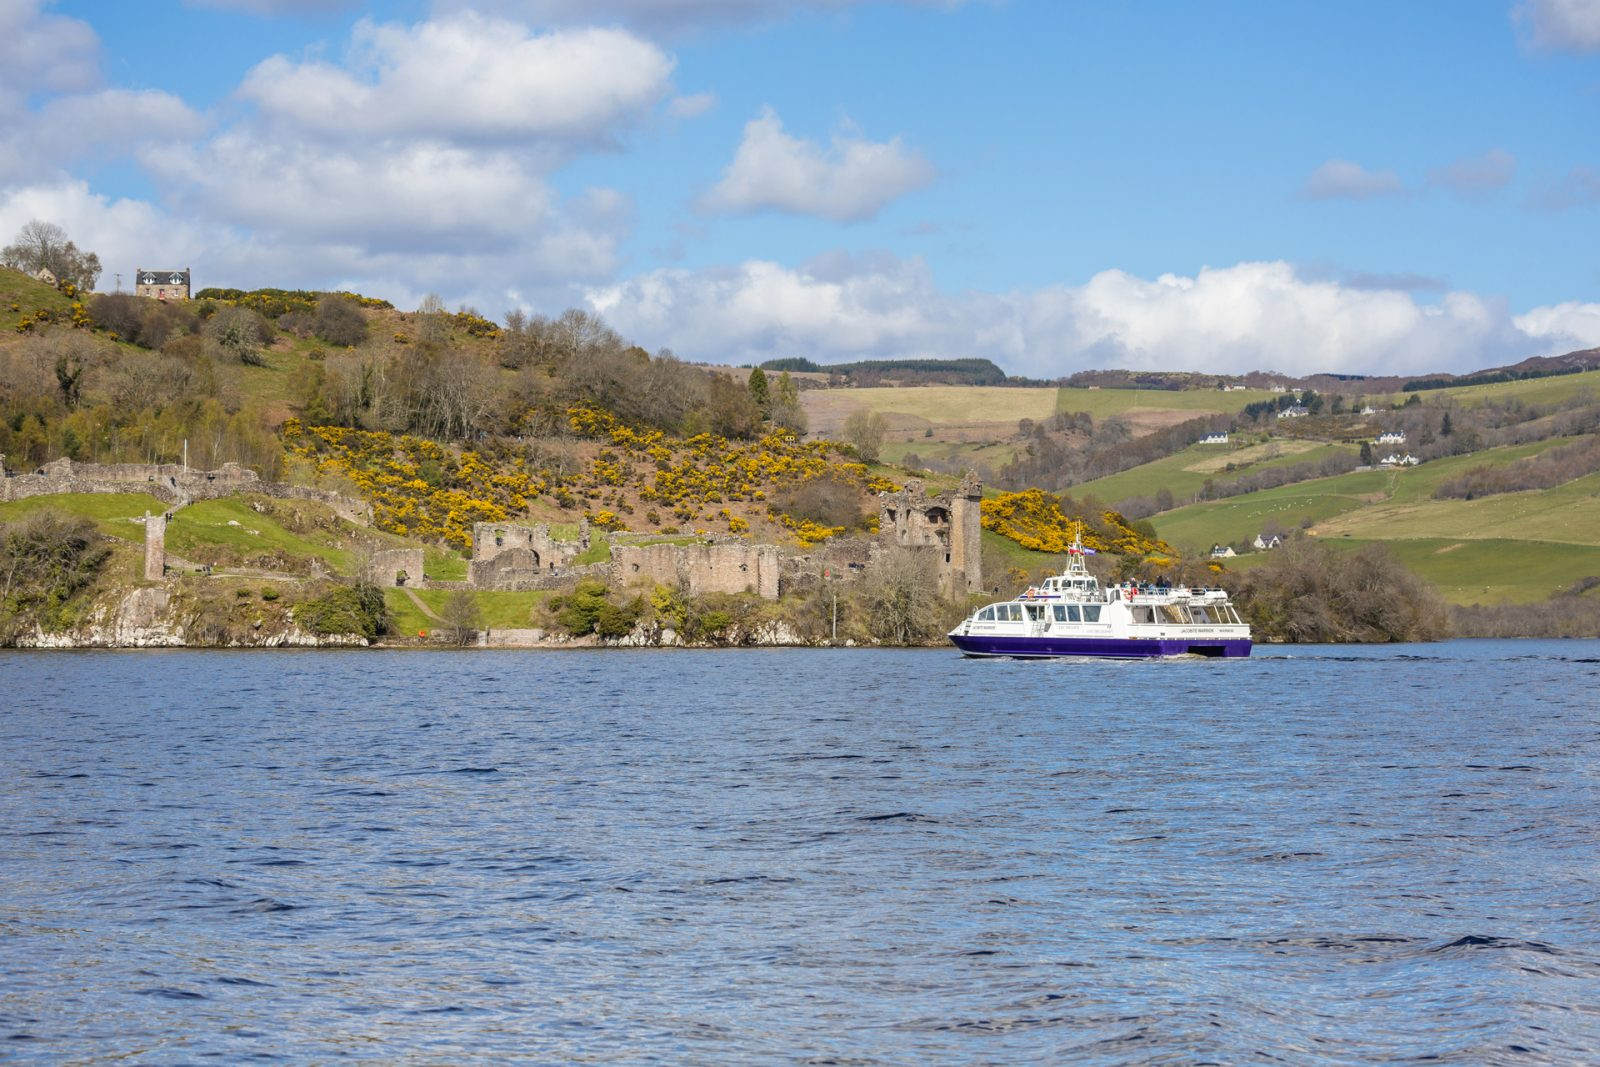 Scotland Corporate Travel Incentives - Cruise boat on Loch Ness